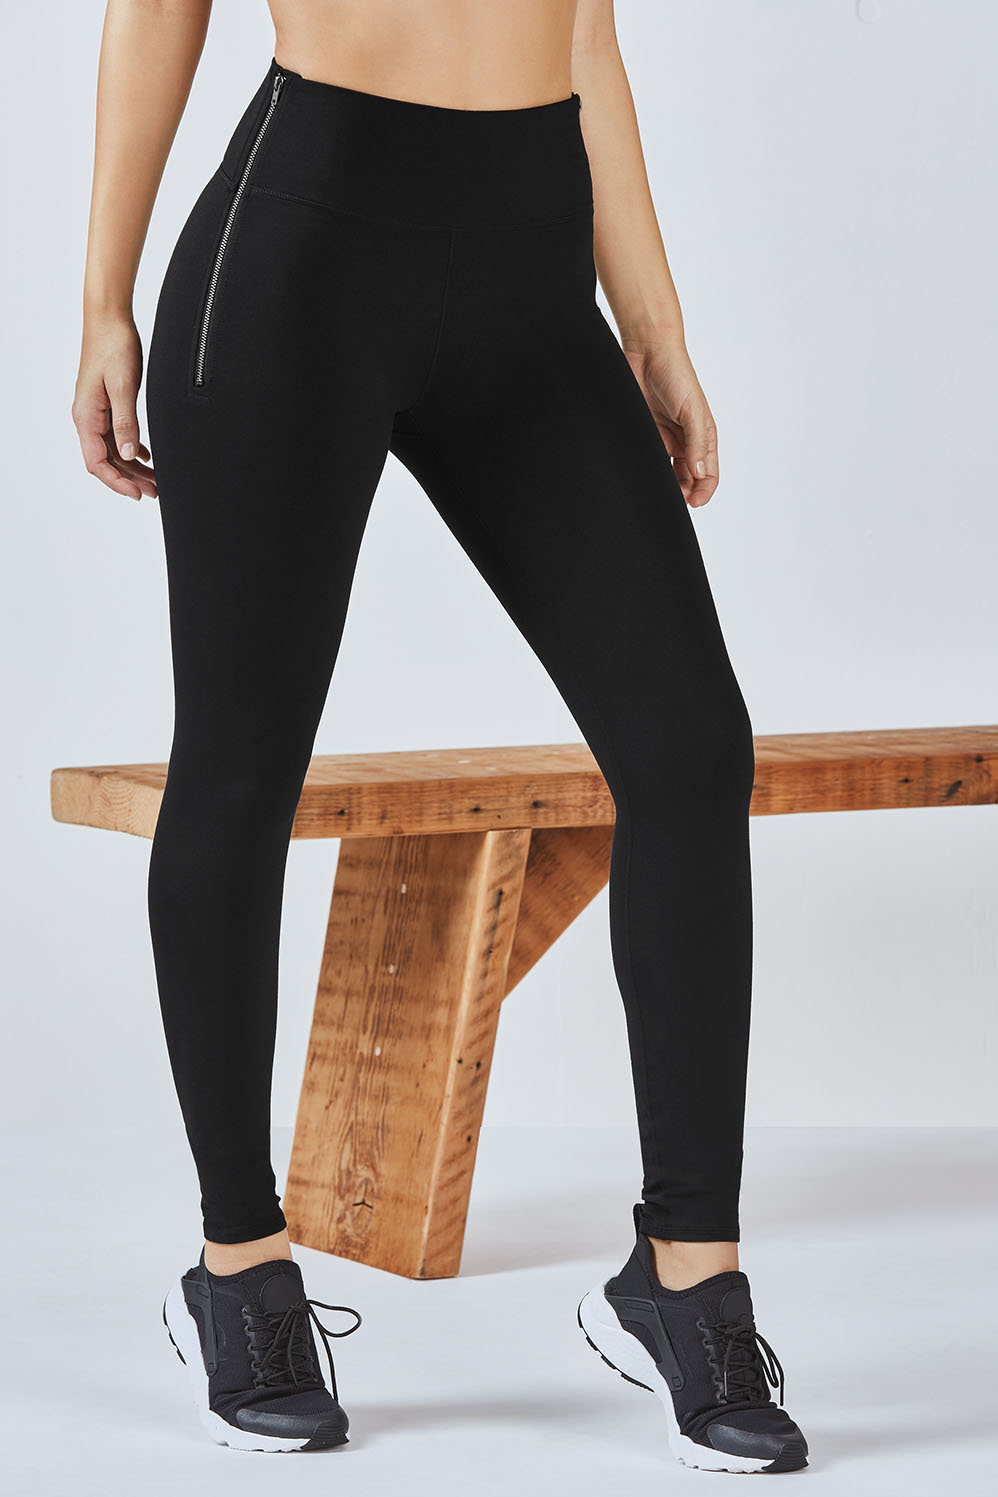 High-Waisted Statement PowerHold Legging in black - Get great deals at Fabletics